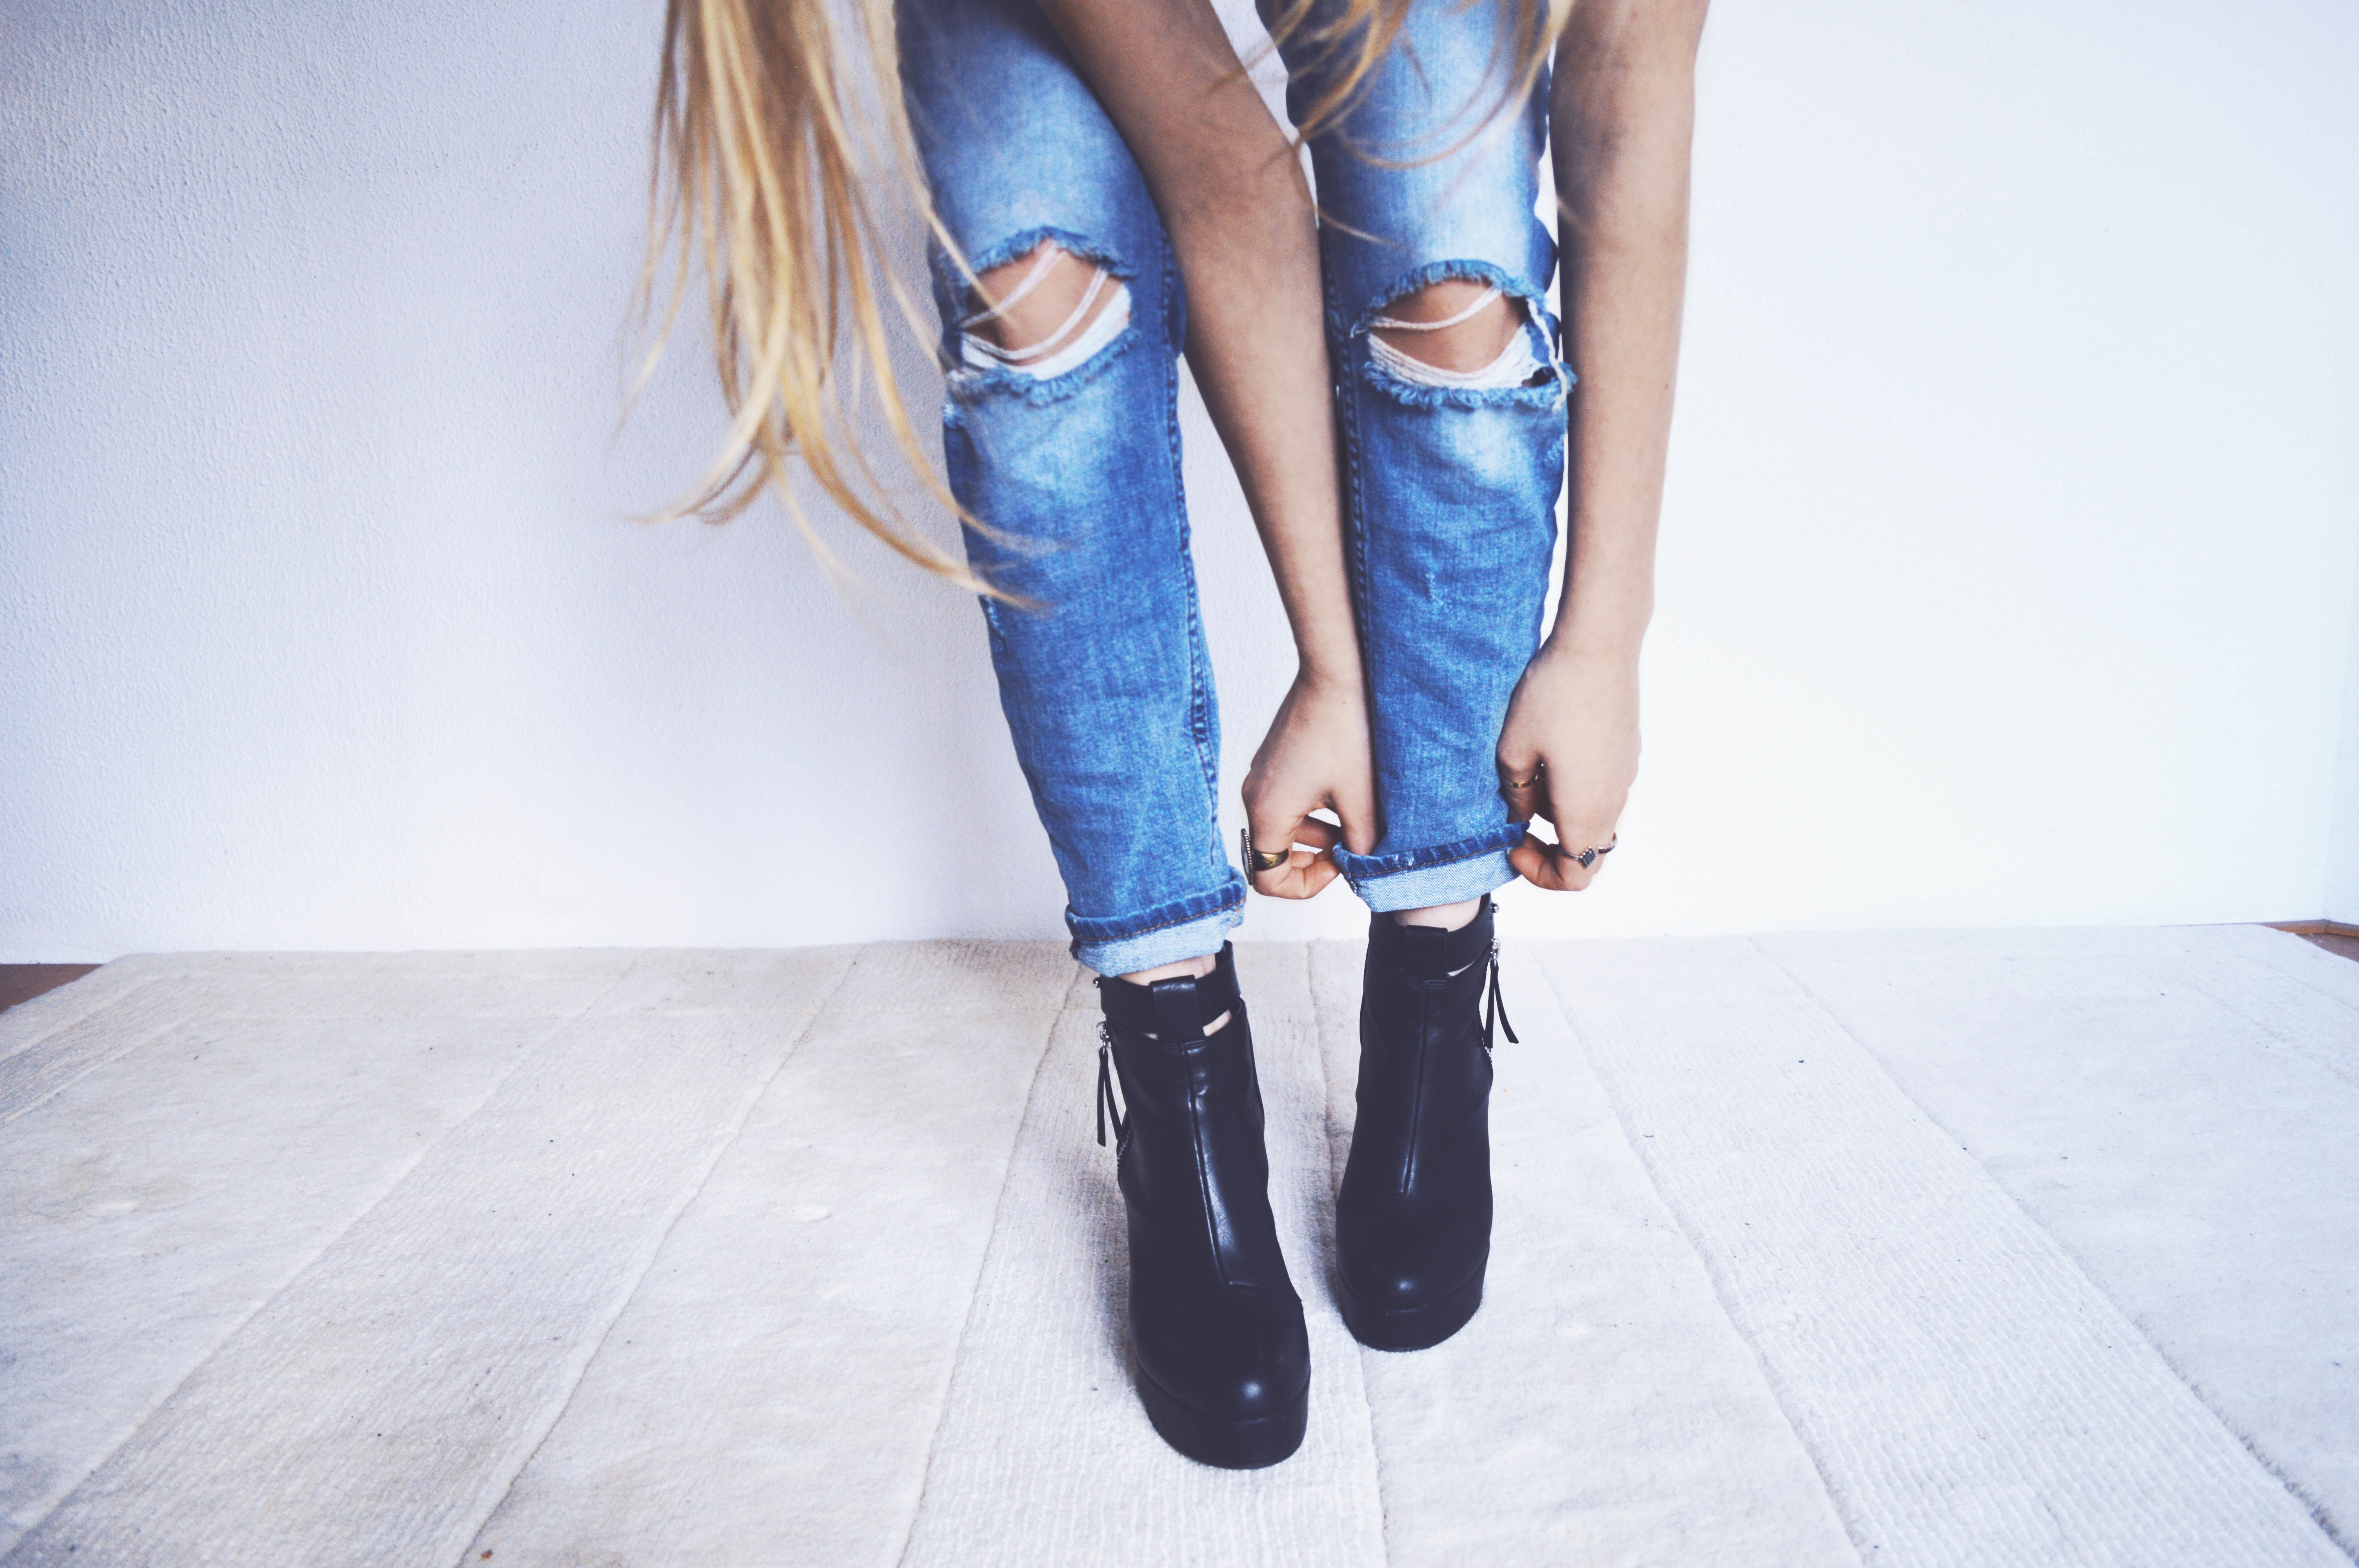 boss-fight-free-high-quality-stock-images-photos-photography-woman-boots-jeans